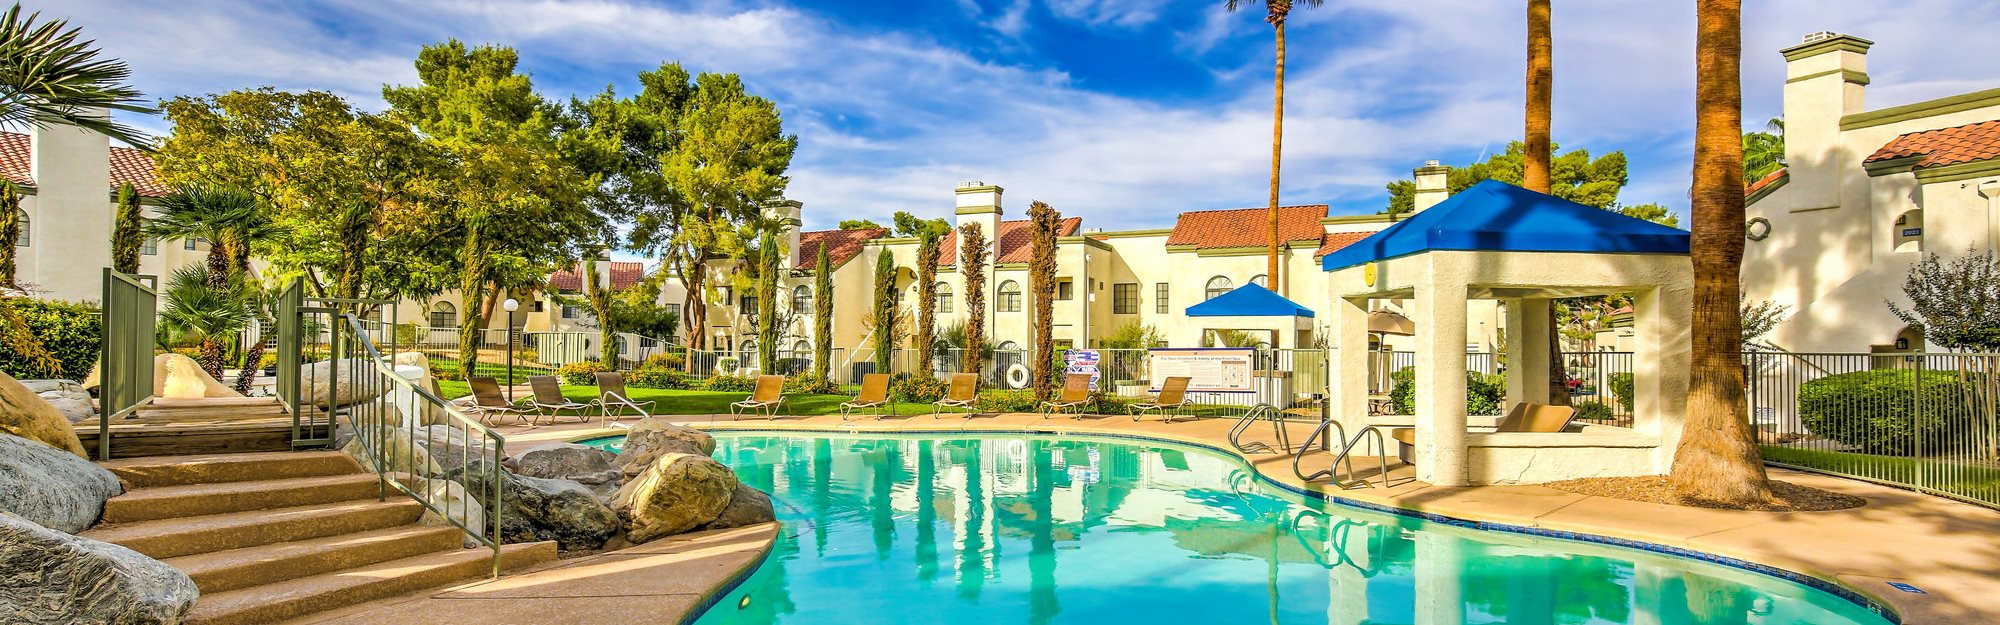 Apartments in henderson nv montego bay apartment homes - One bedroom apartments in henderson nv ...